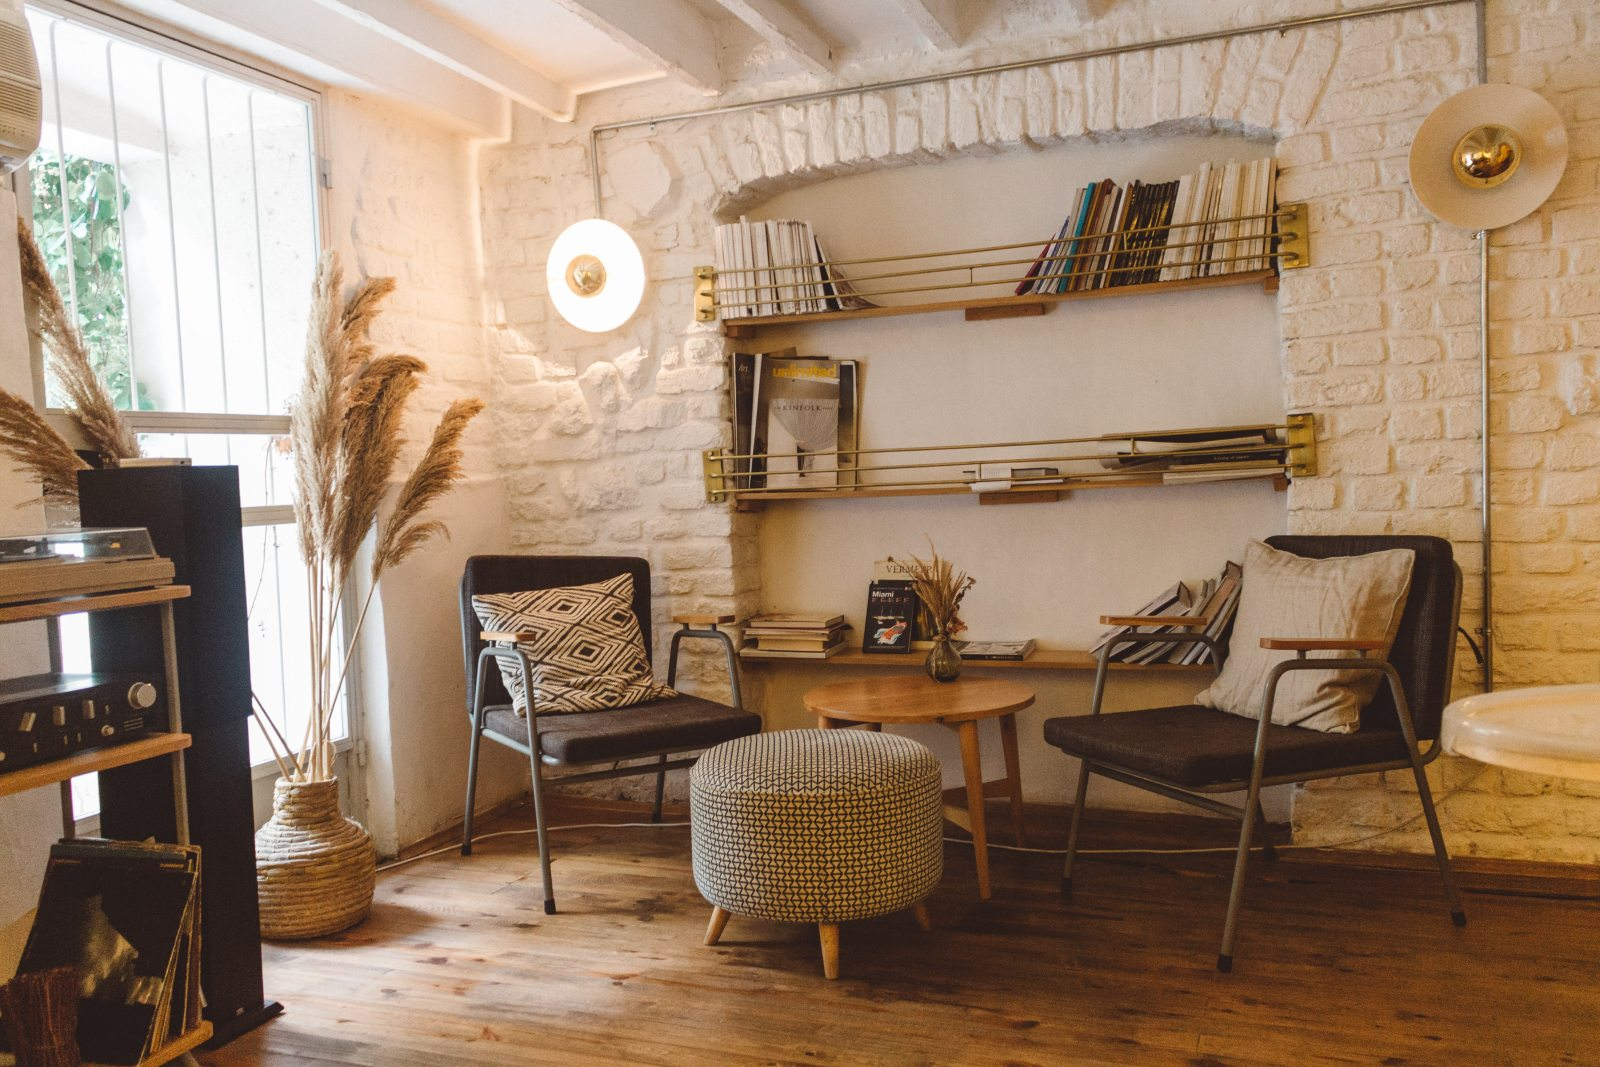 15 Easy And Affordable Ways To Redecorate Your Space